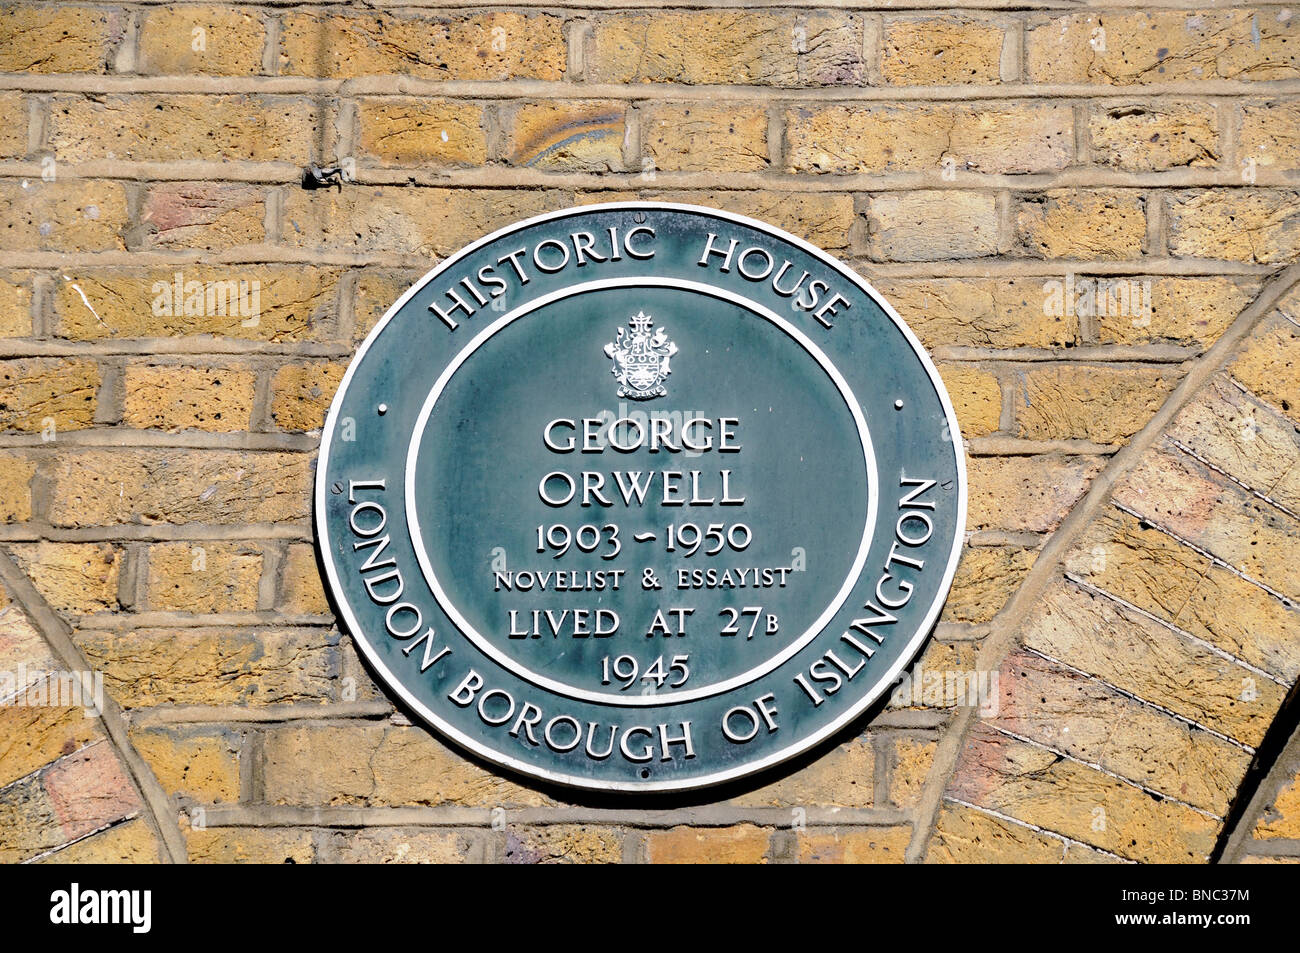 Historic House plaque to George Orwell, Canonbury Square, London Borough of Islington, England UK - Stock Image